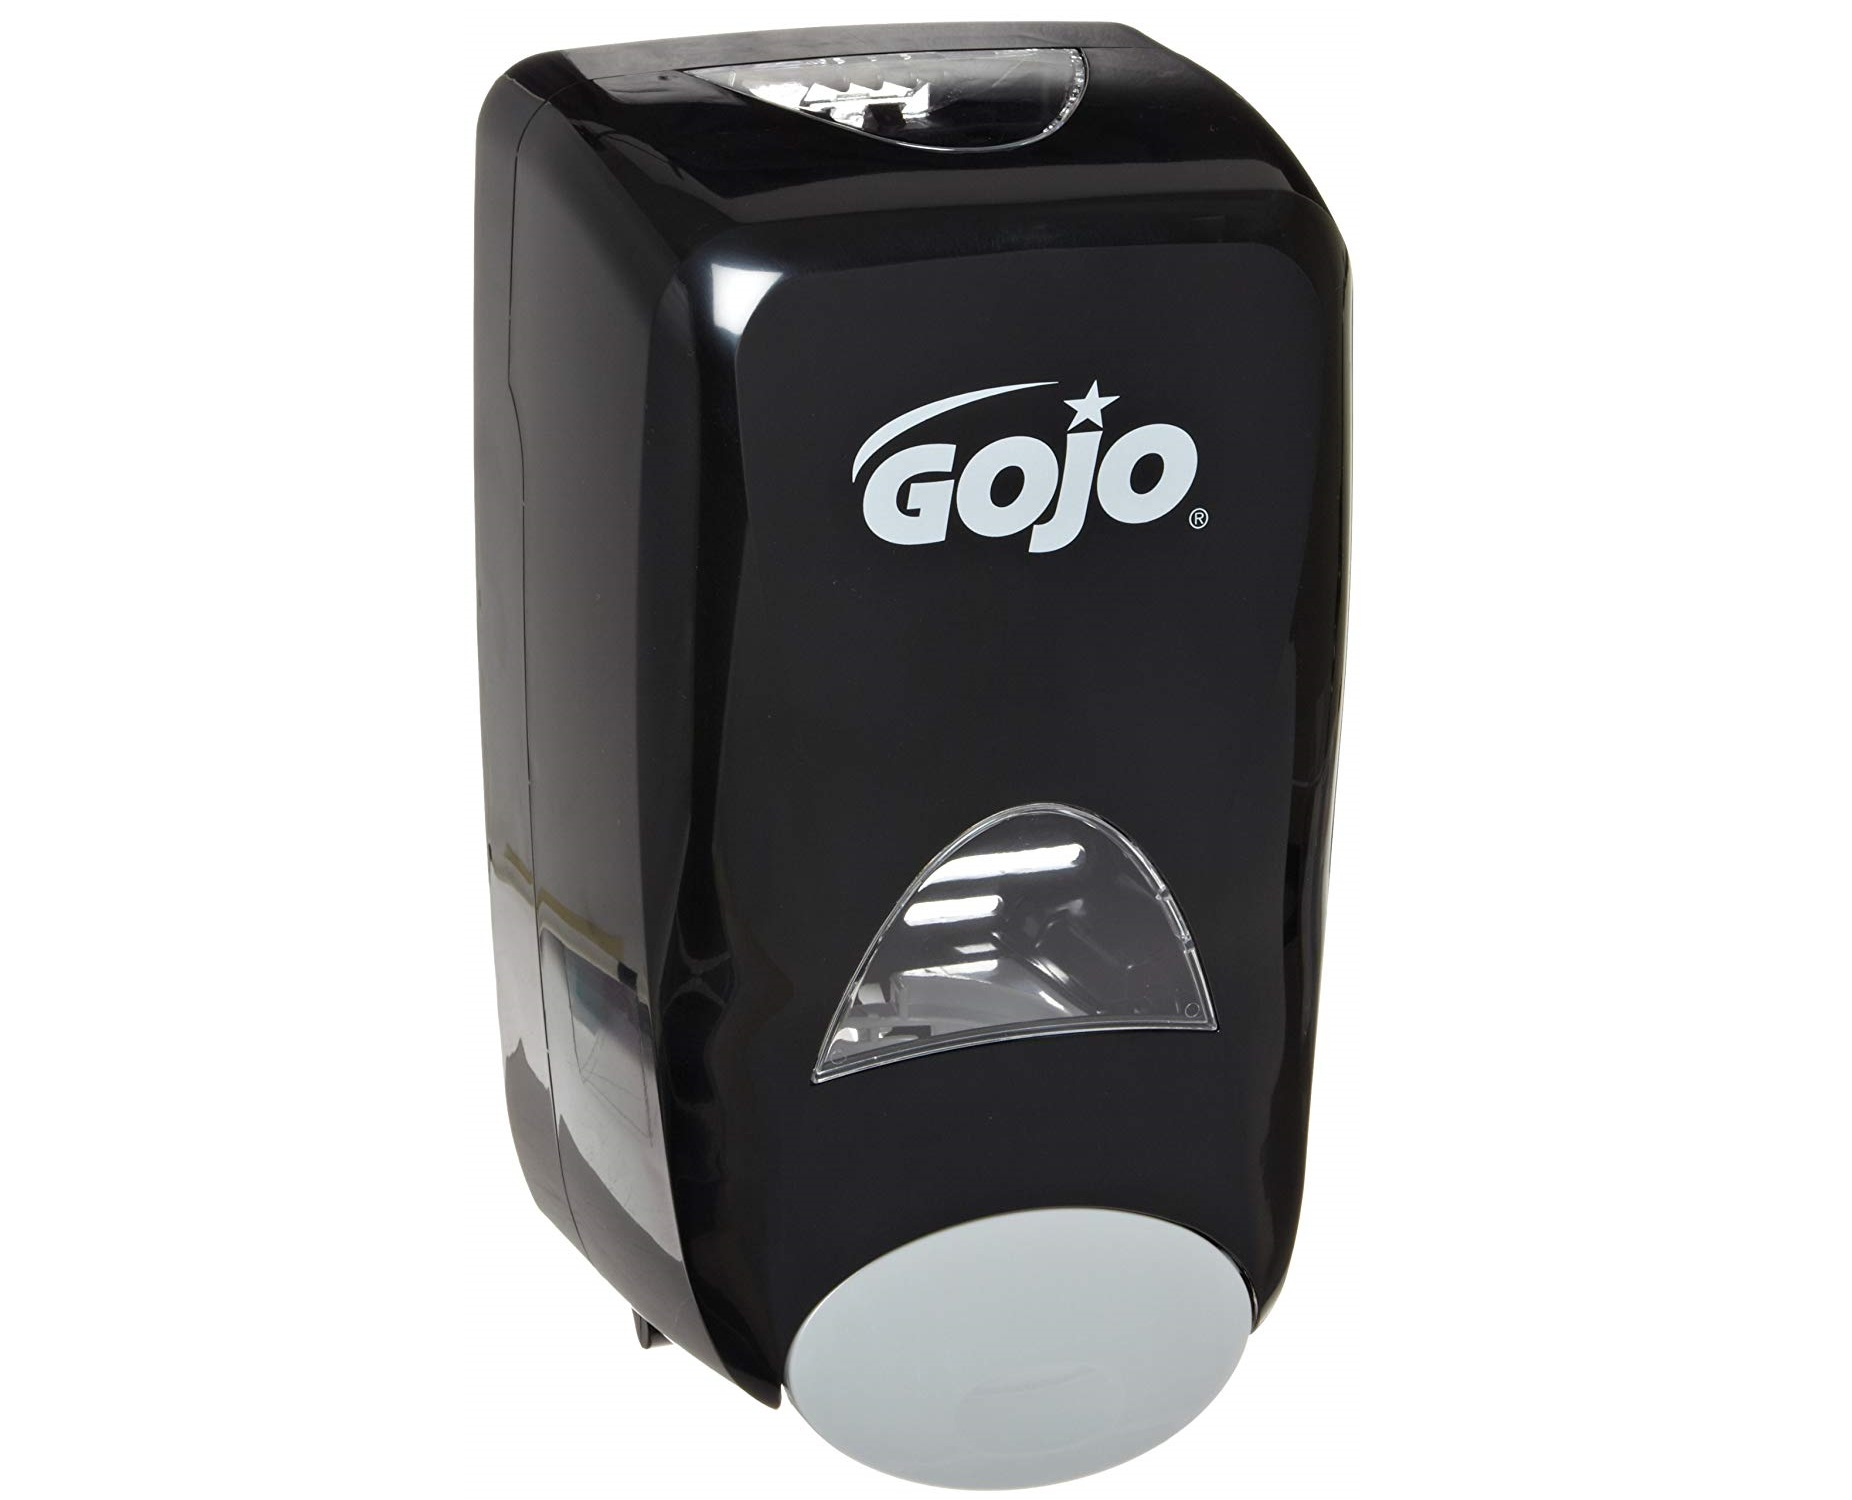 GOJO® FMX-20™ Dispenser - Black / Chrome